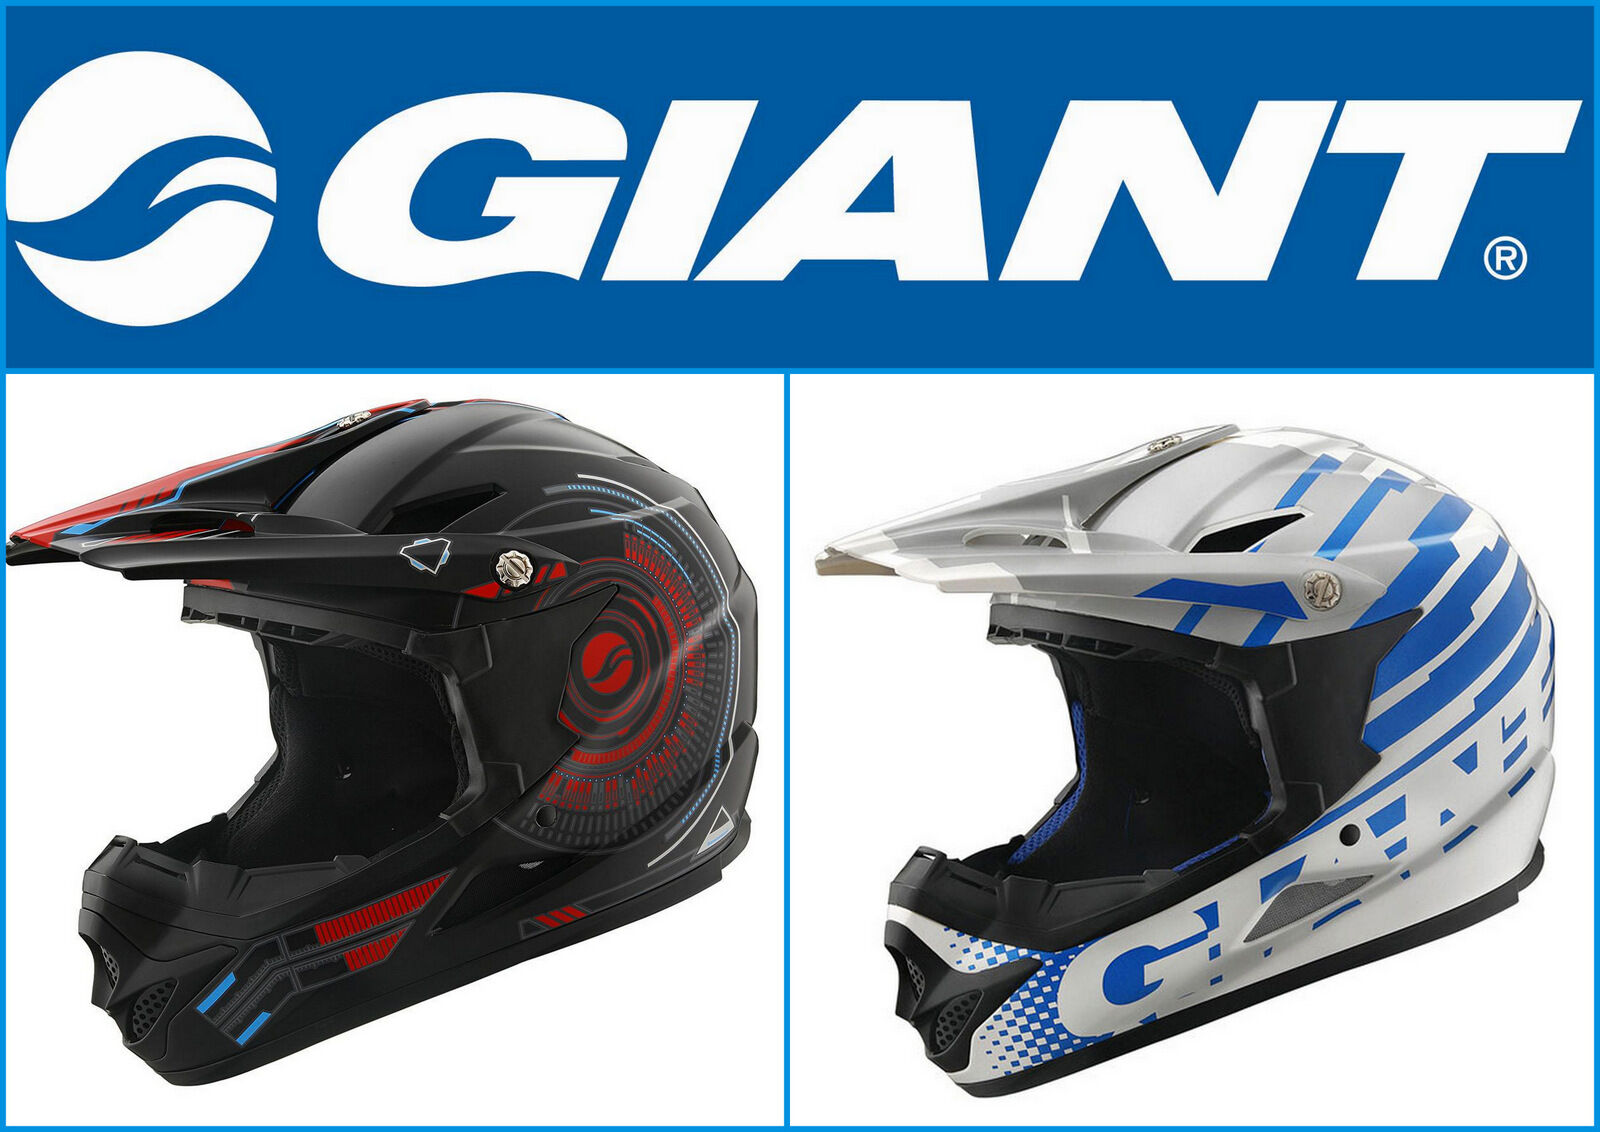 Casco integrale bici GIANT FACTOR full face helmet bike DH downhill enduro mtb